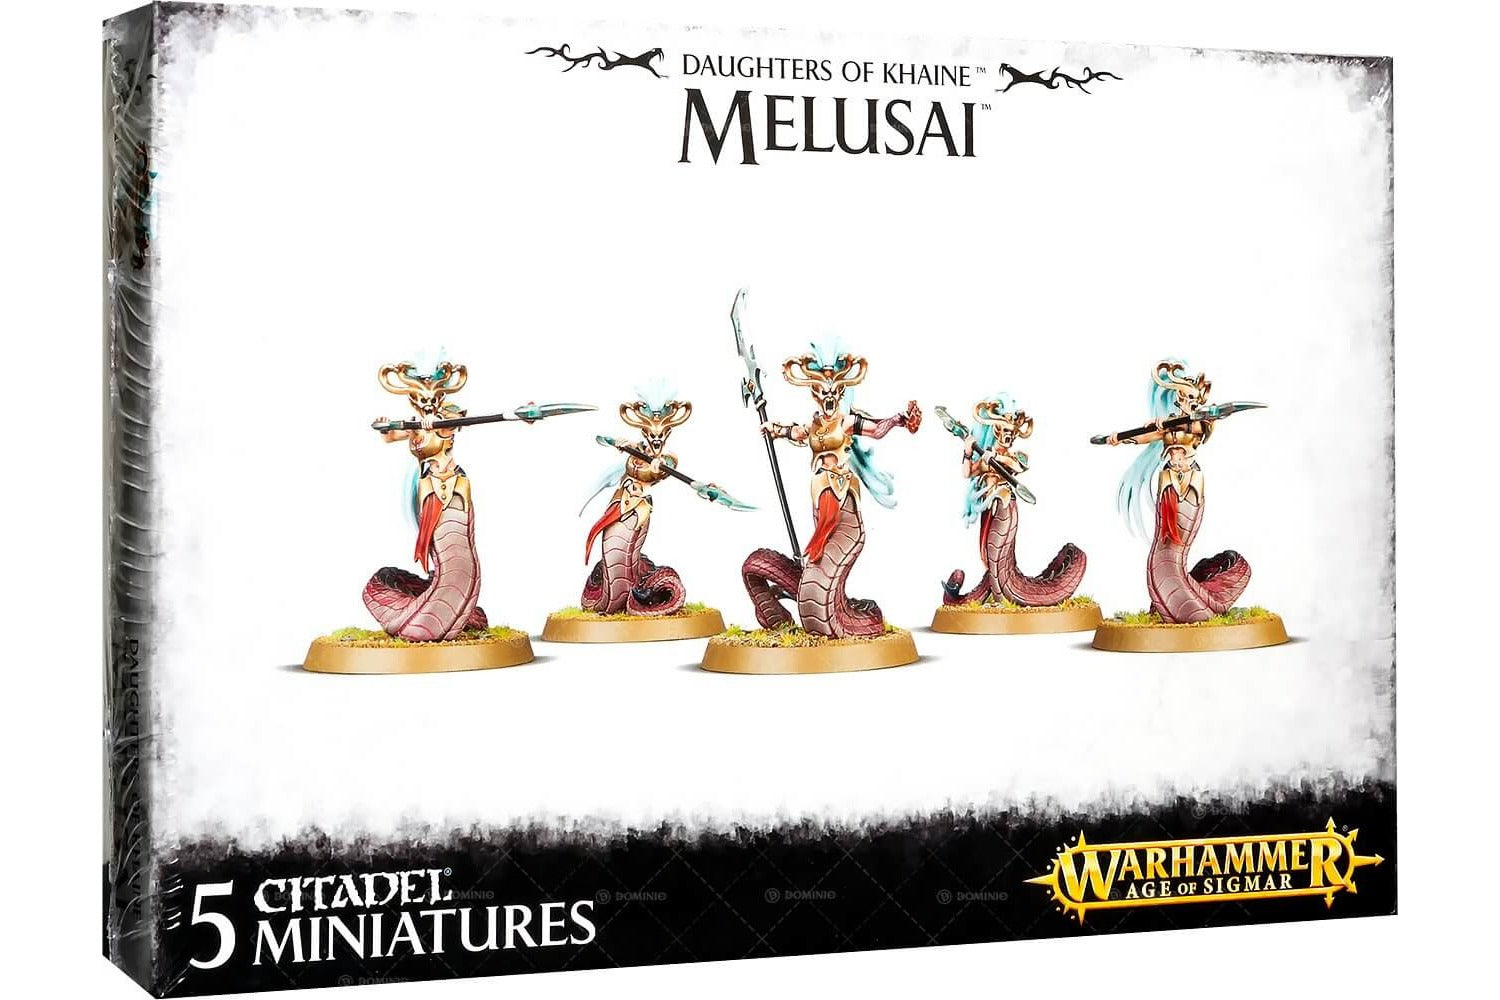 Warhammer Age Of Sigmar Daughters Of Khaine Melusai (85-20) - Pastime Sports & Games